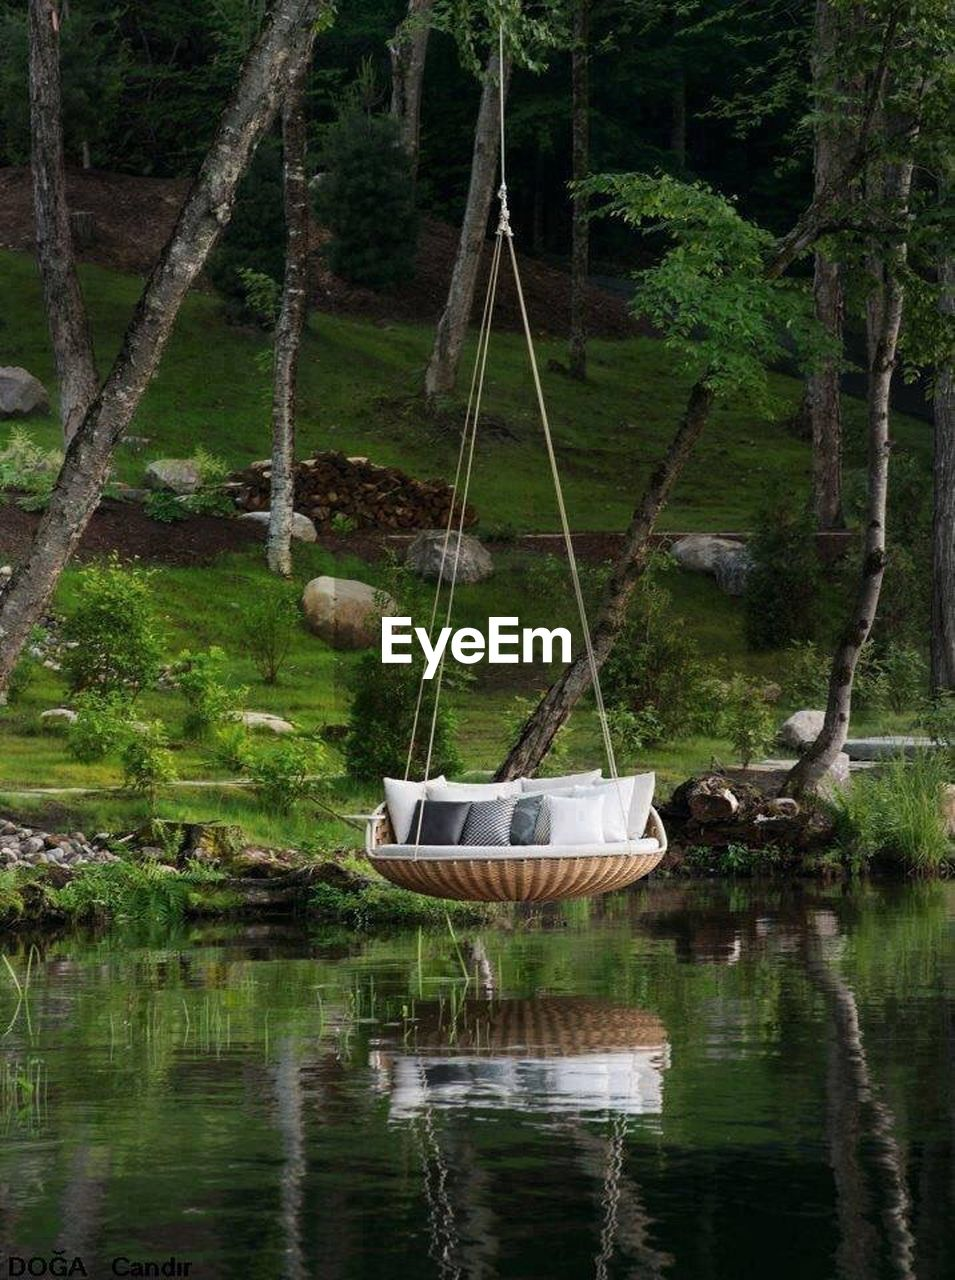 water, nature, tree, nautical vessel, reflection, transportation, lake, day, outdoors, mode of transport, tranquility, tranquil scene, hanging, beauty in nature, no people, waterfront, wooden raft, scenics, moored